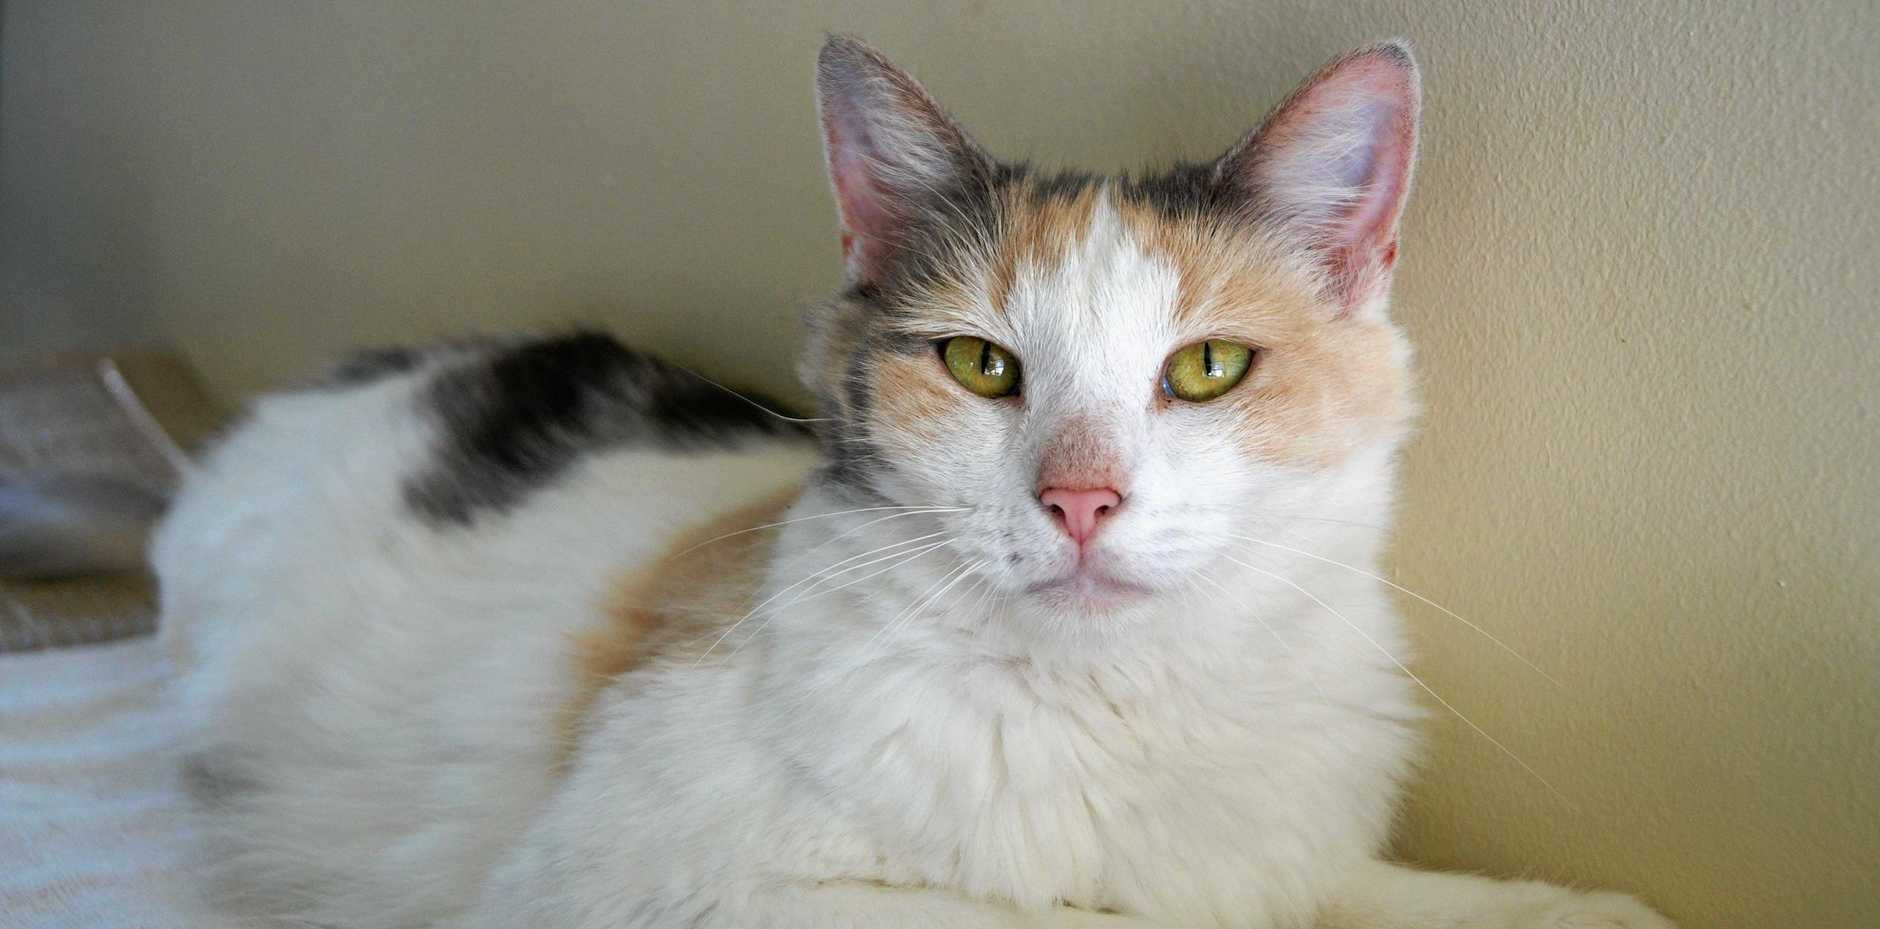 CUTE: Lucy is affectionate and gets along with other cats.